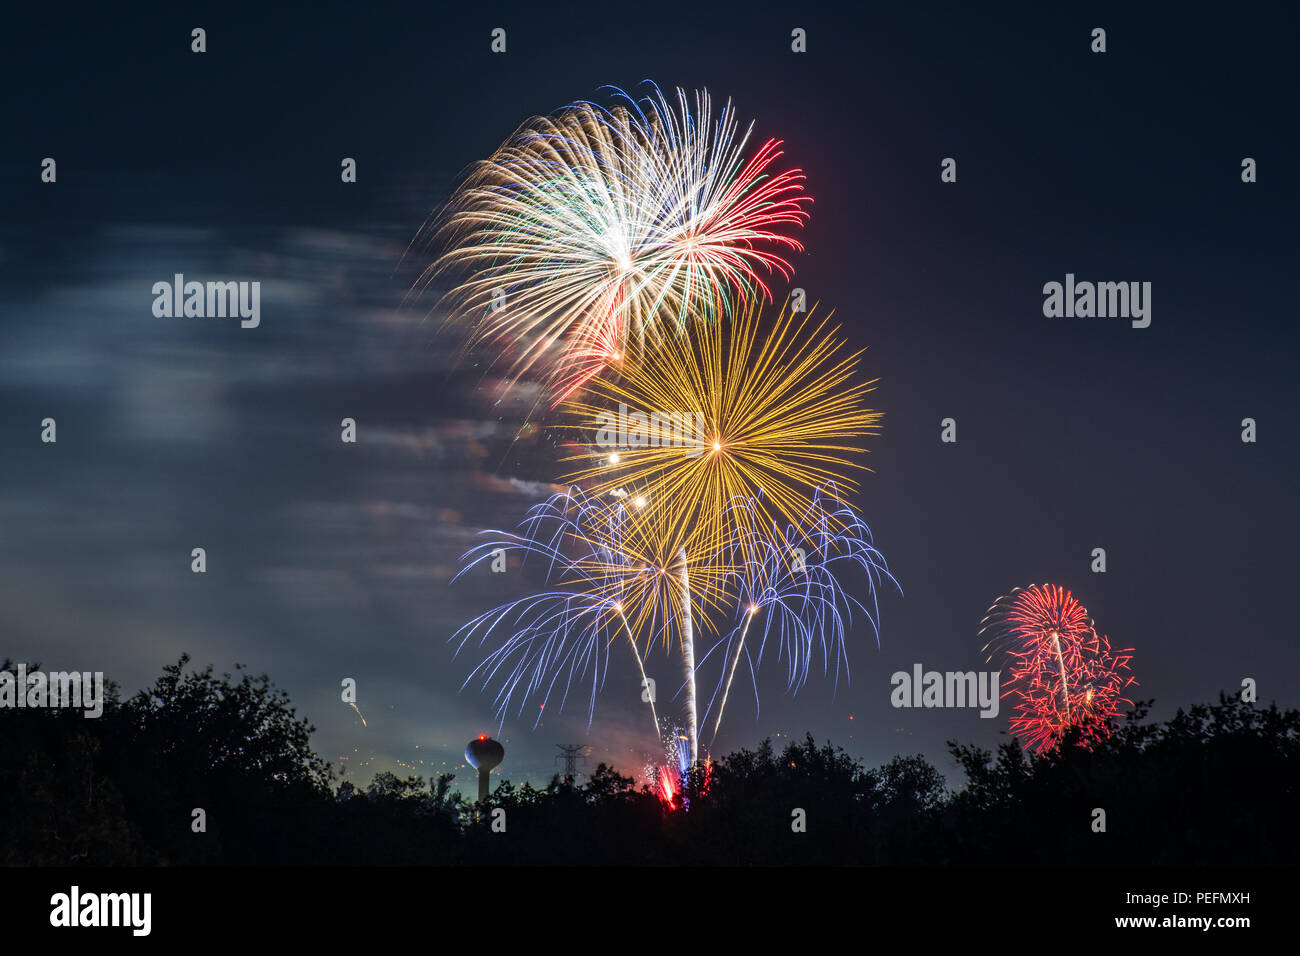 Fireworks are shot over the night sky at Cal Expo in Sacramento, California for the 4th of July. - Stock Image